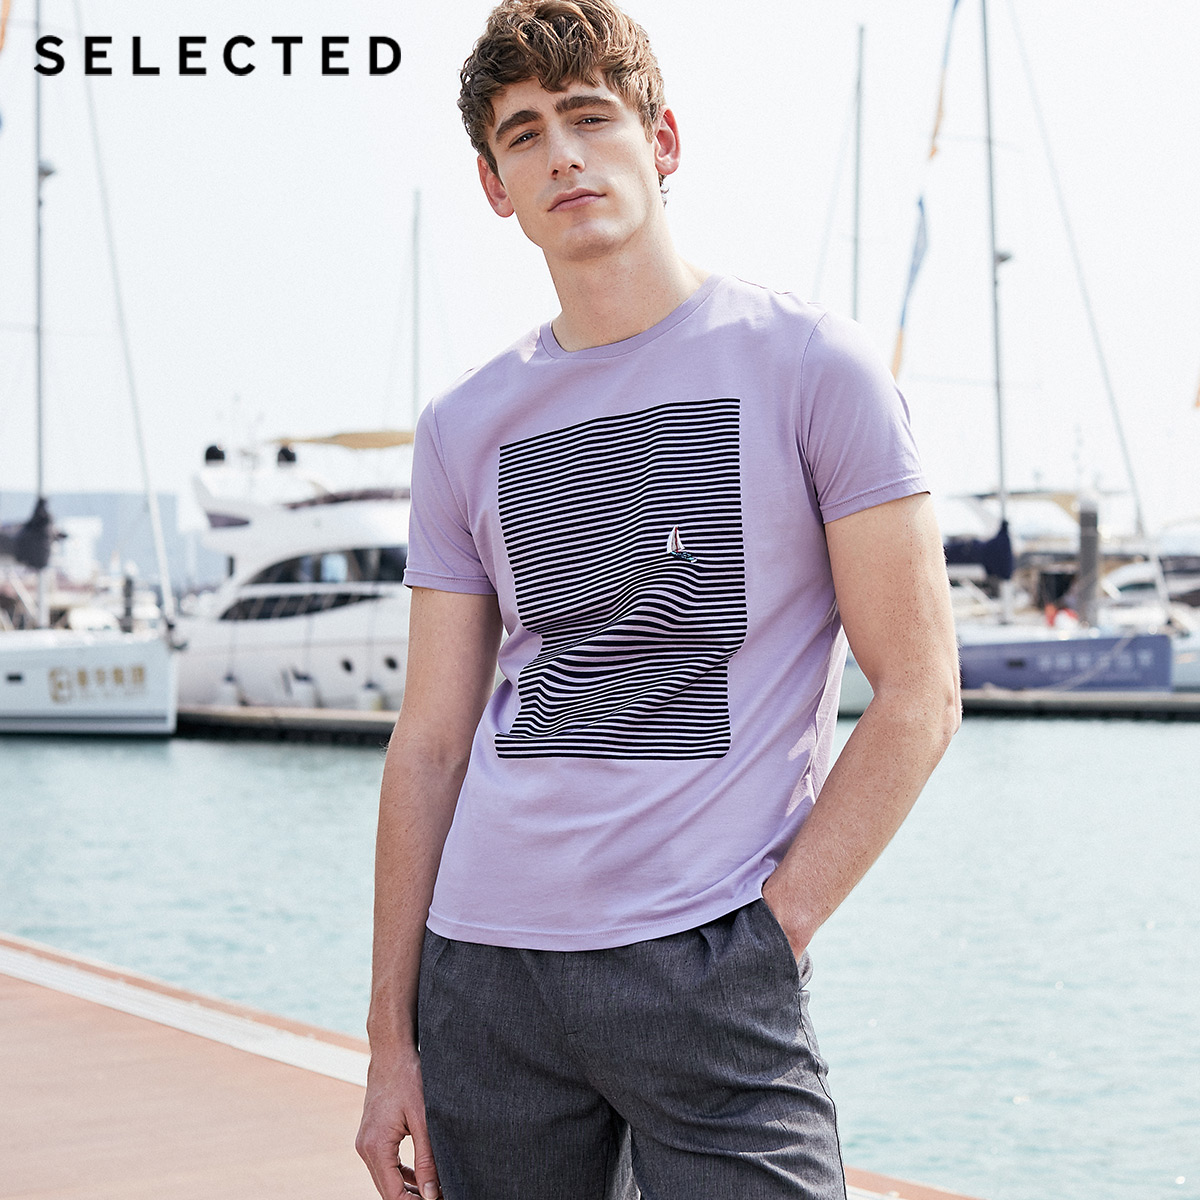 SELECTED Men's Summer 100% Cotton Striped Embroidery Short-sleeved T-shirt S|419201562